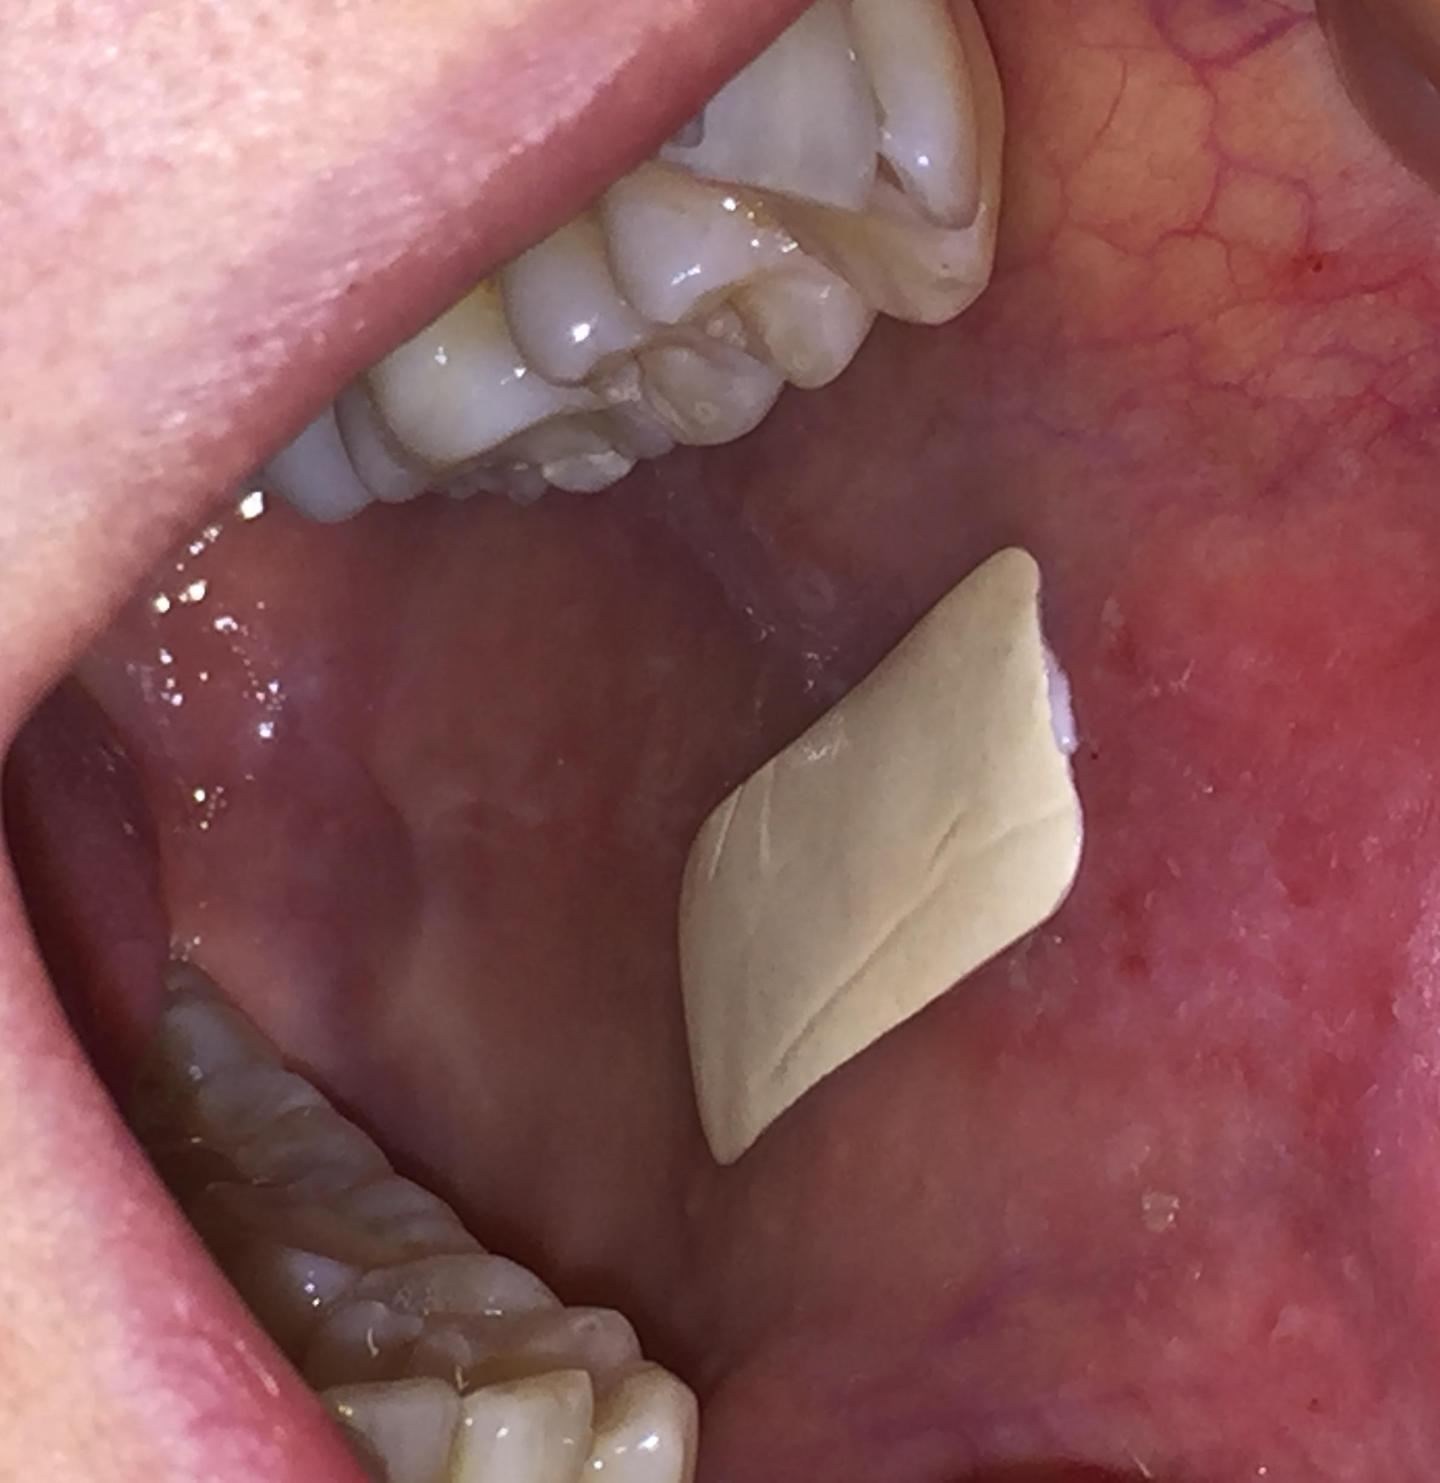 Plaster which sticks inside the mouth will revolutionise treatment of oral conditions